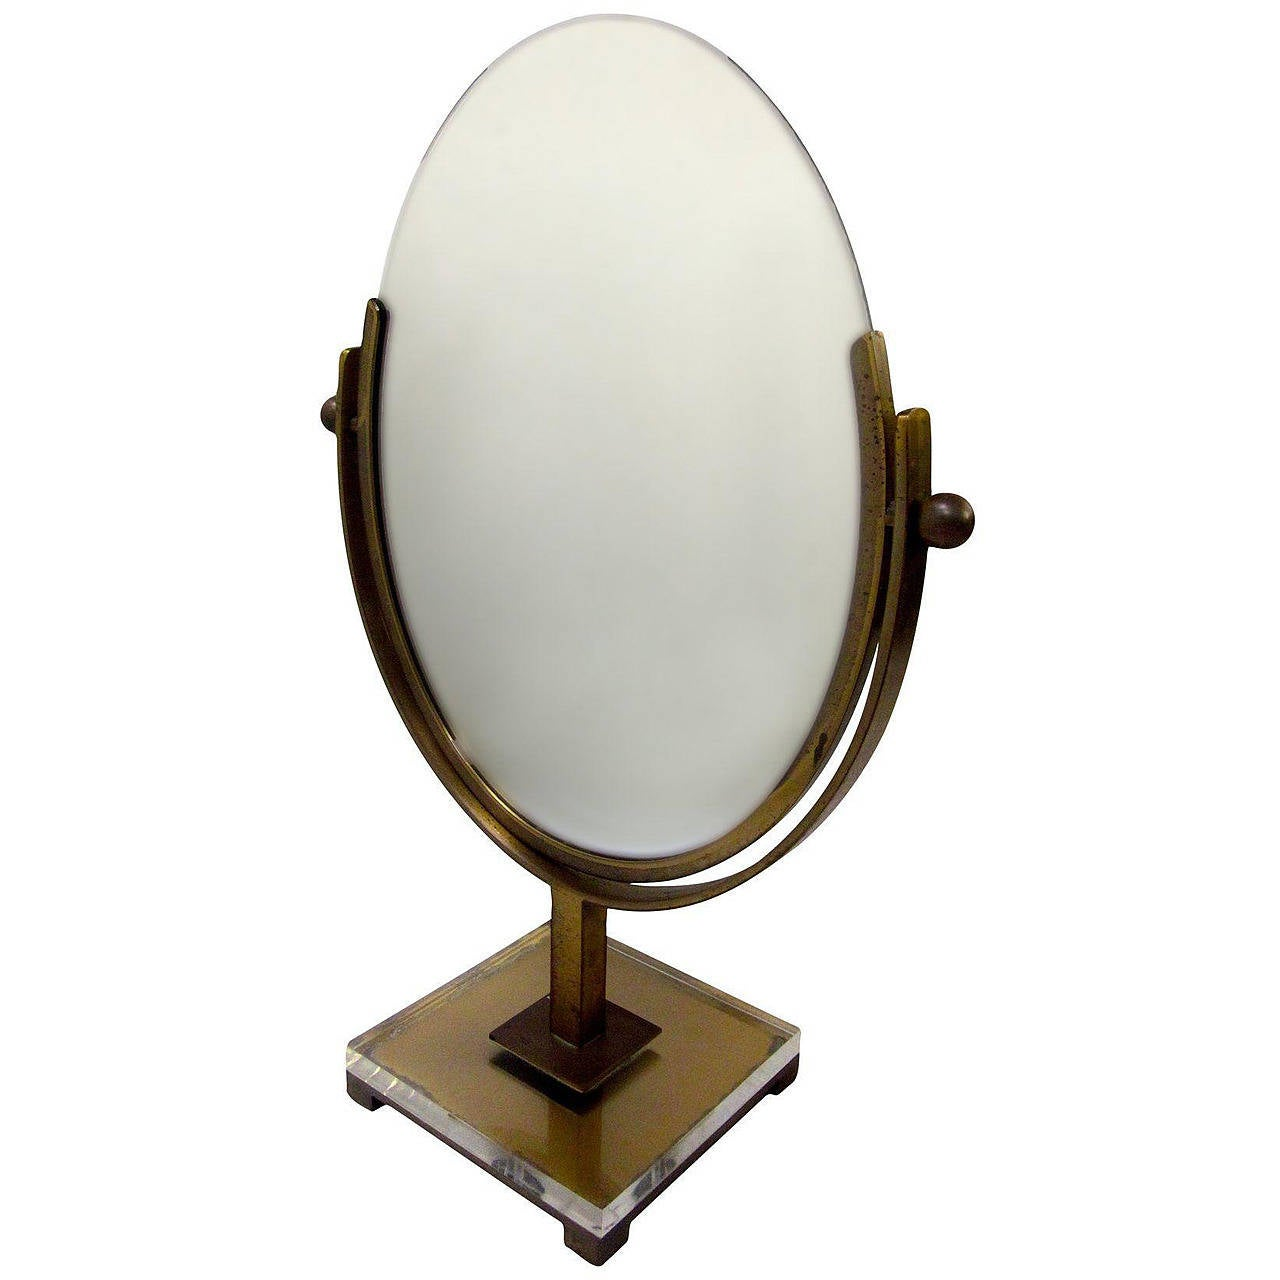 Double Sided Vanity Mirror by Charles Hollis Jones in Brass and Lucite, Signed For Sale